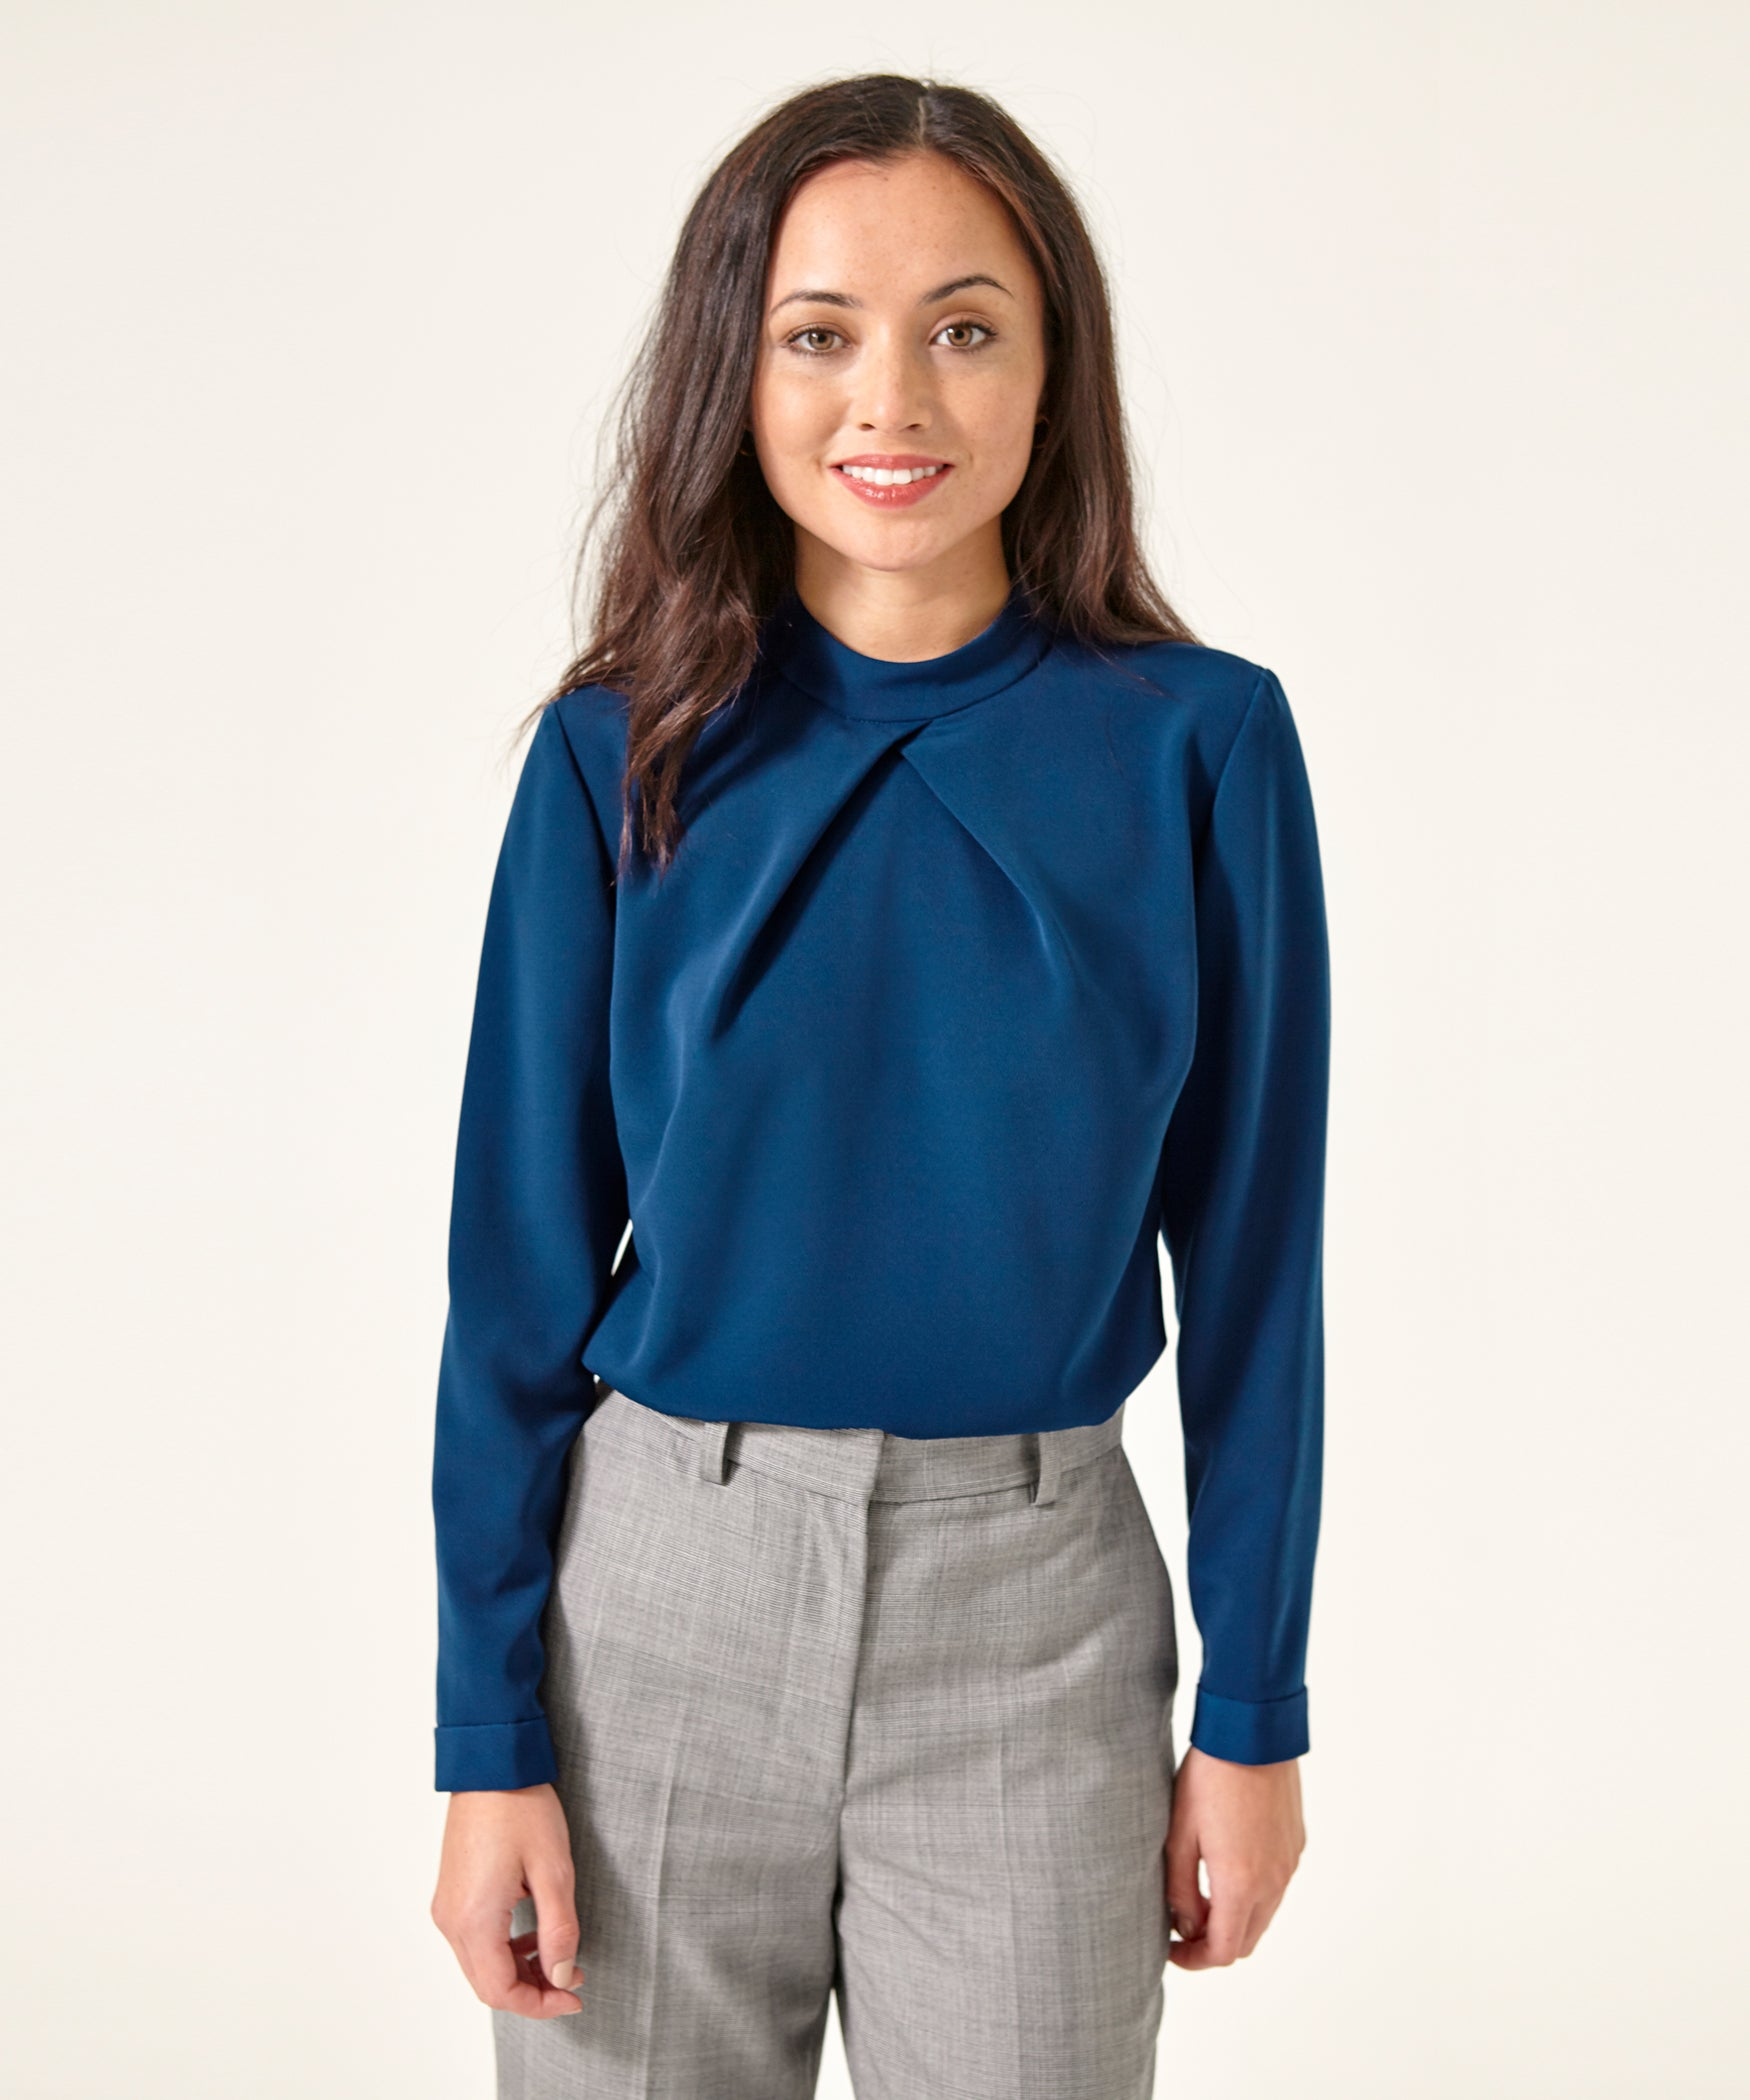 Petite Blue High Neck Top - Use Code Anniversary for 25% off!